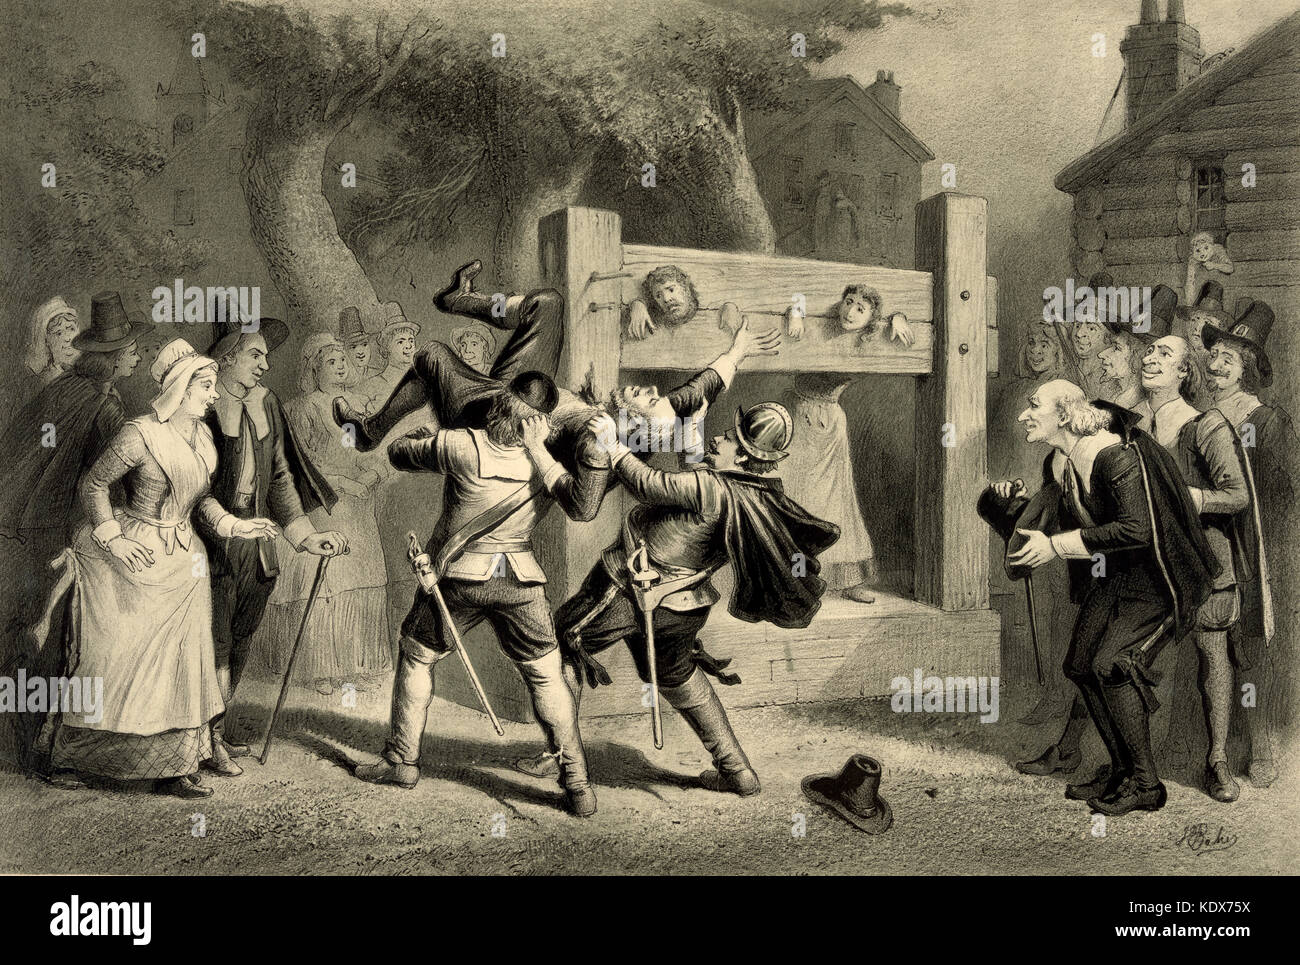 Salem Witch Trials, 1692 - 1693 Stockbild